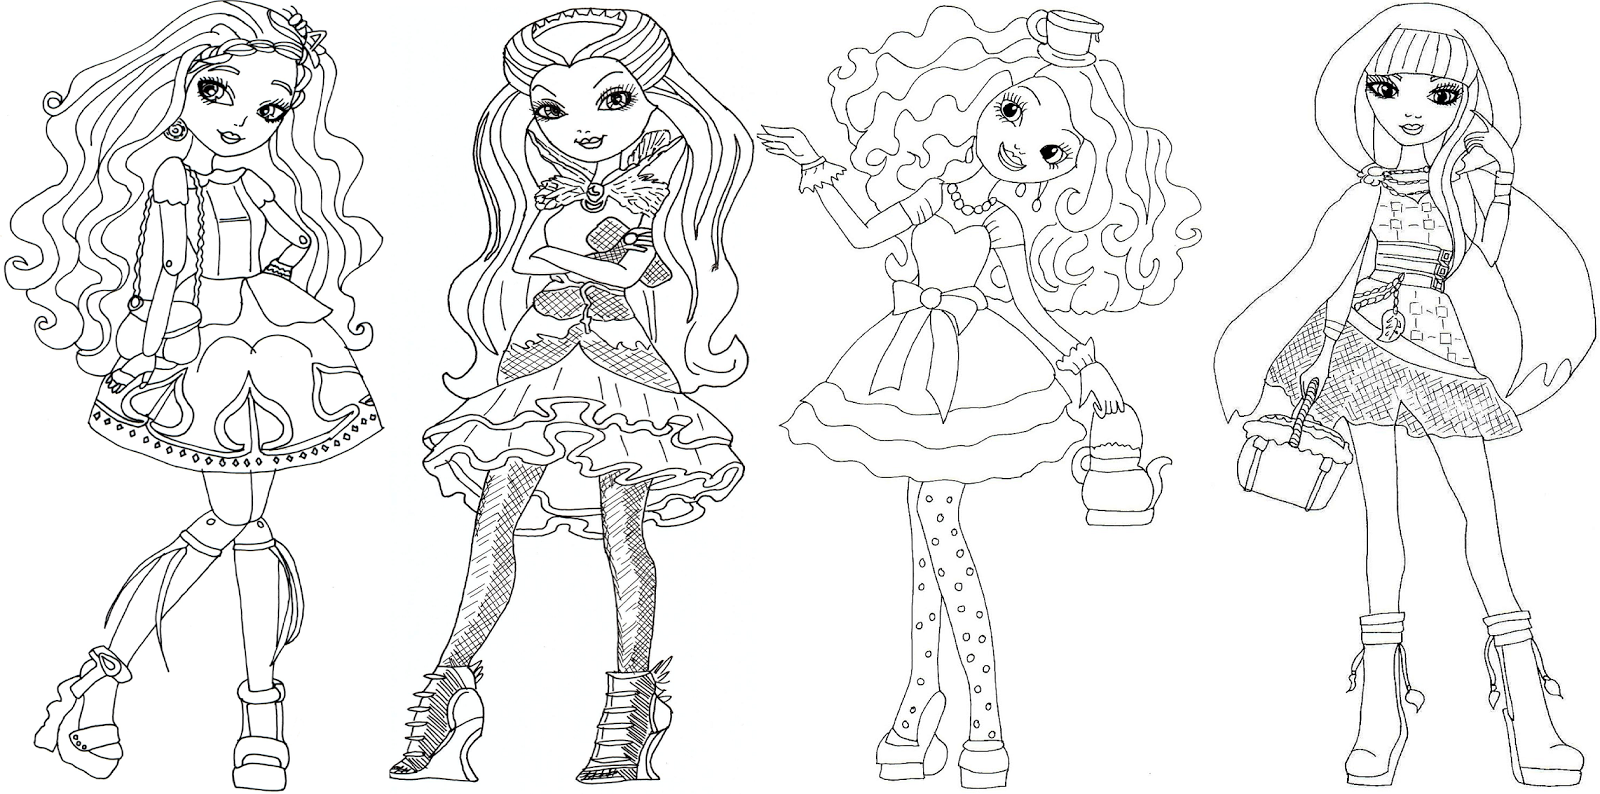 Free Printable Ever After High Coloring Pages October 2015 Coloring Pages For After High